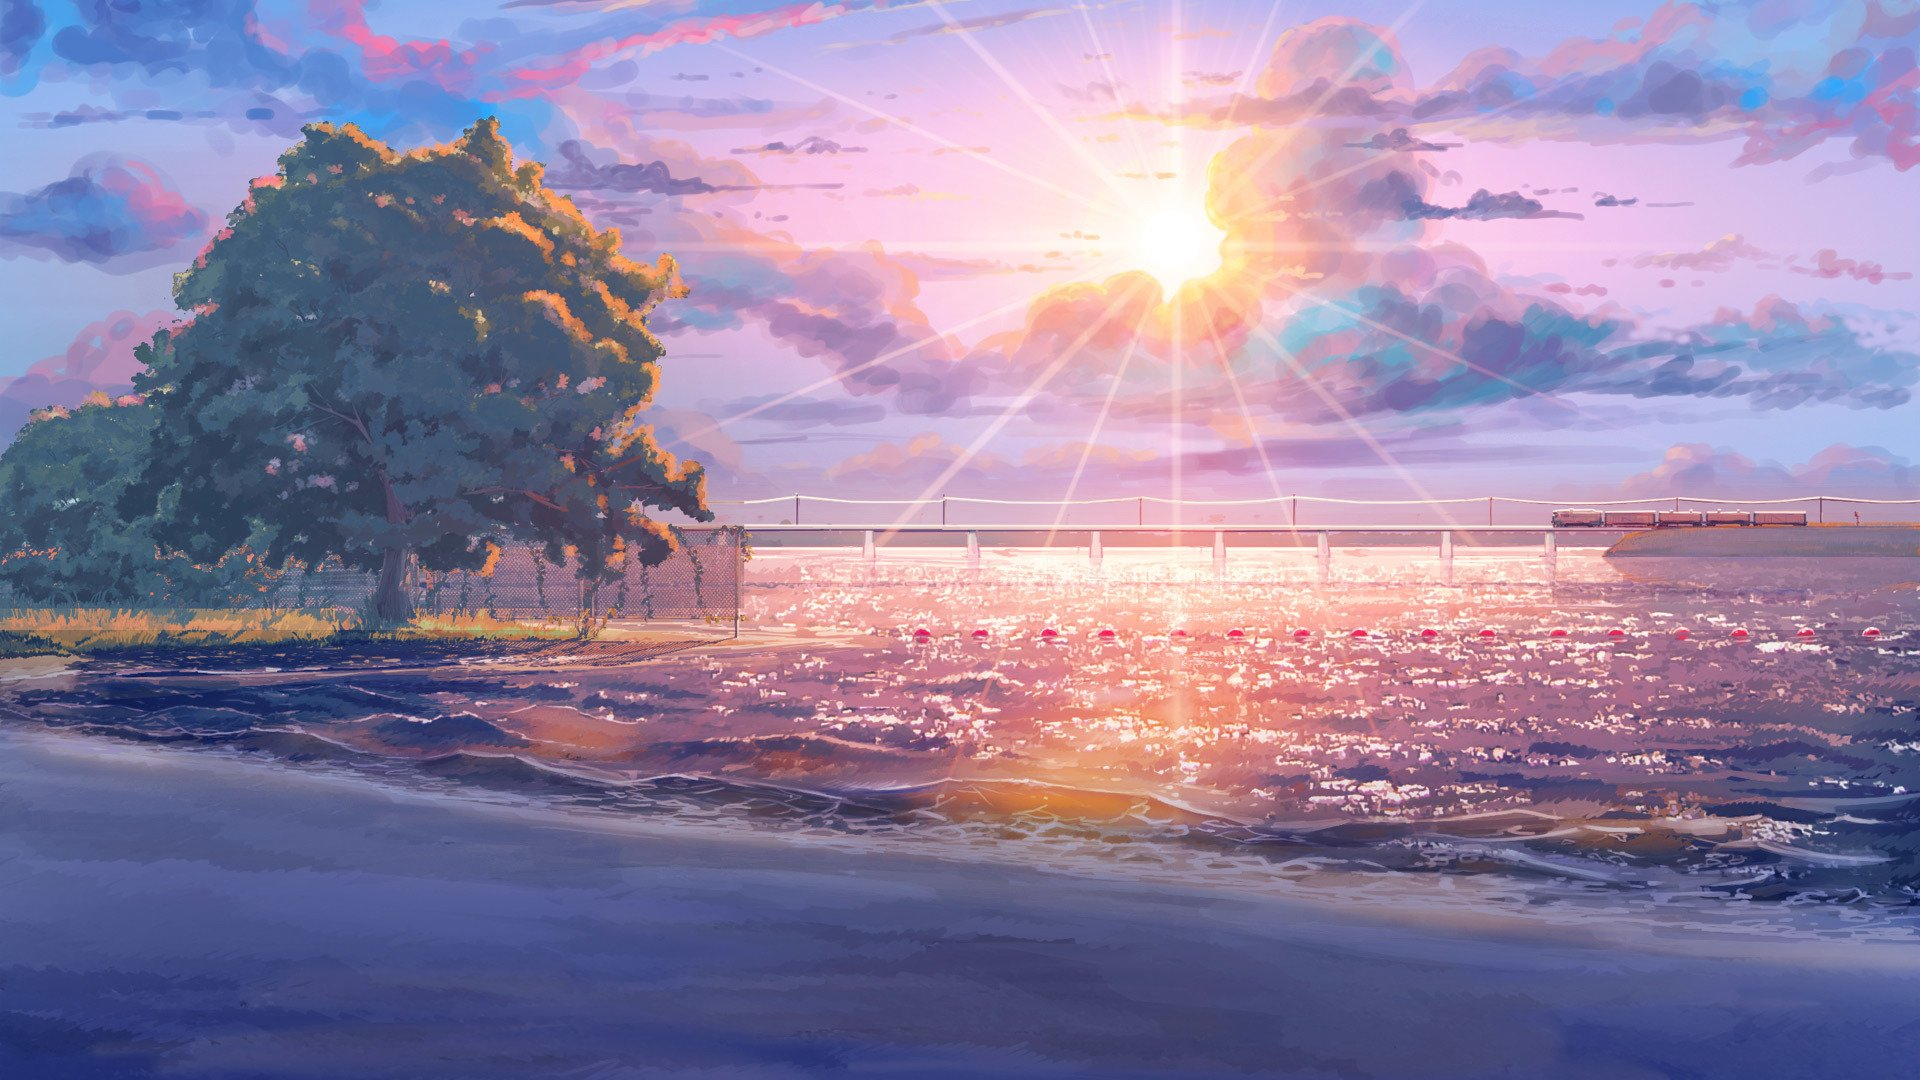 Free Download Beach Endless Summer Anime Sun Tree Sky Cloud Amazing 1920x1080 For Your Desktop Mobile Tablet Explore 48 Anime Beach Wallpapers Anime Beach Wallpapers Anime Backgrounds Anime Background